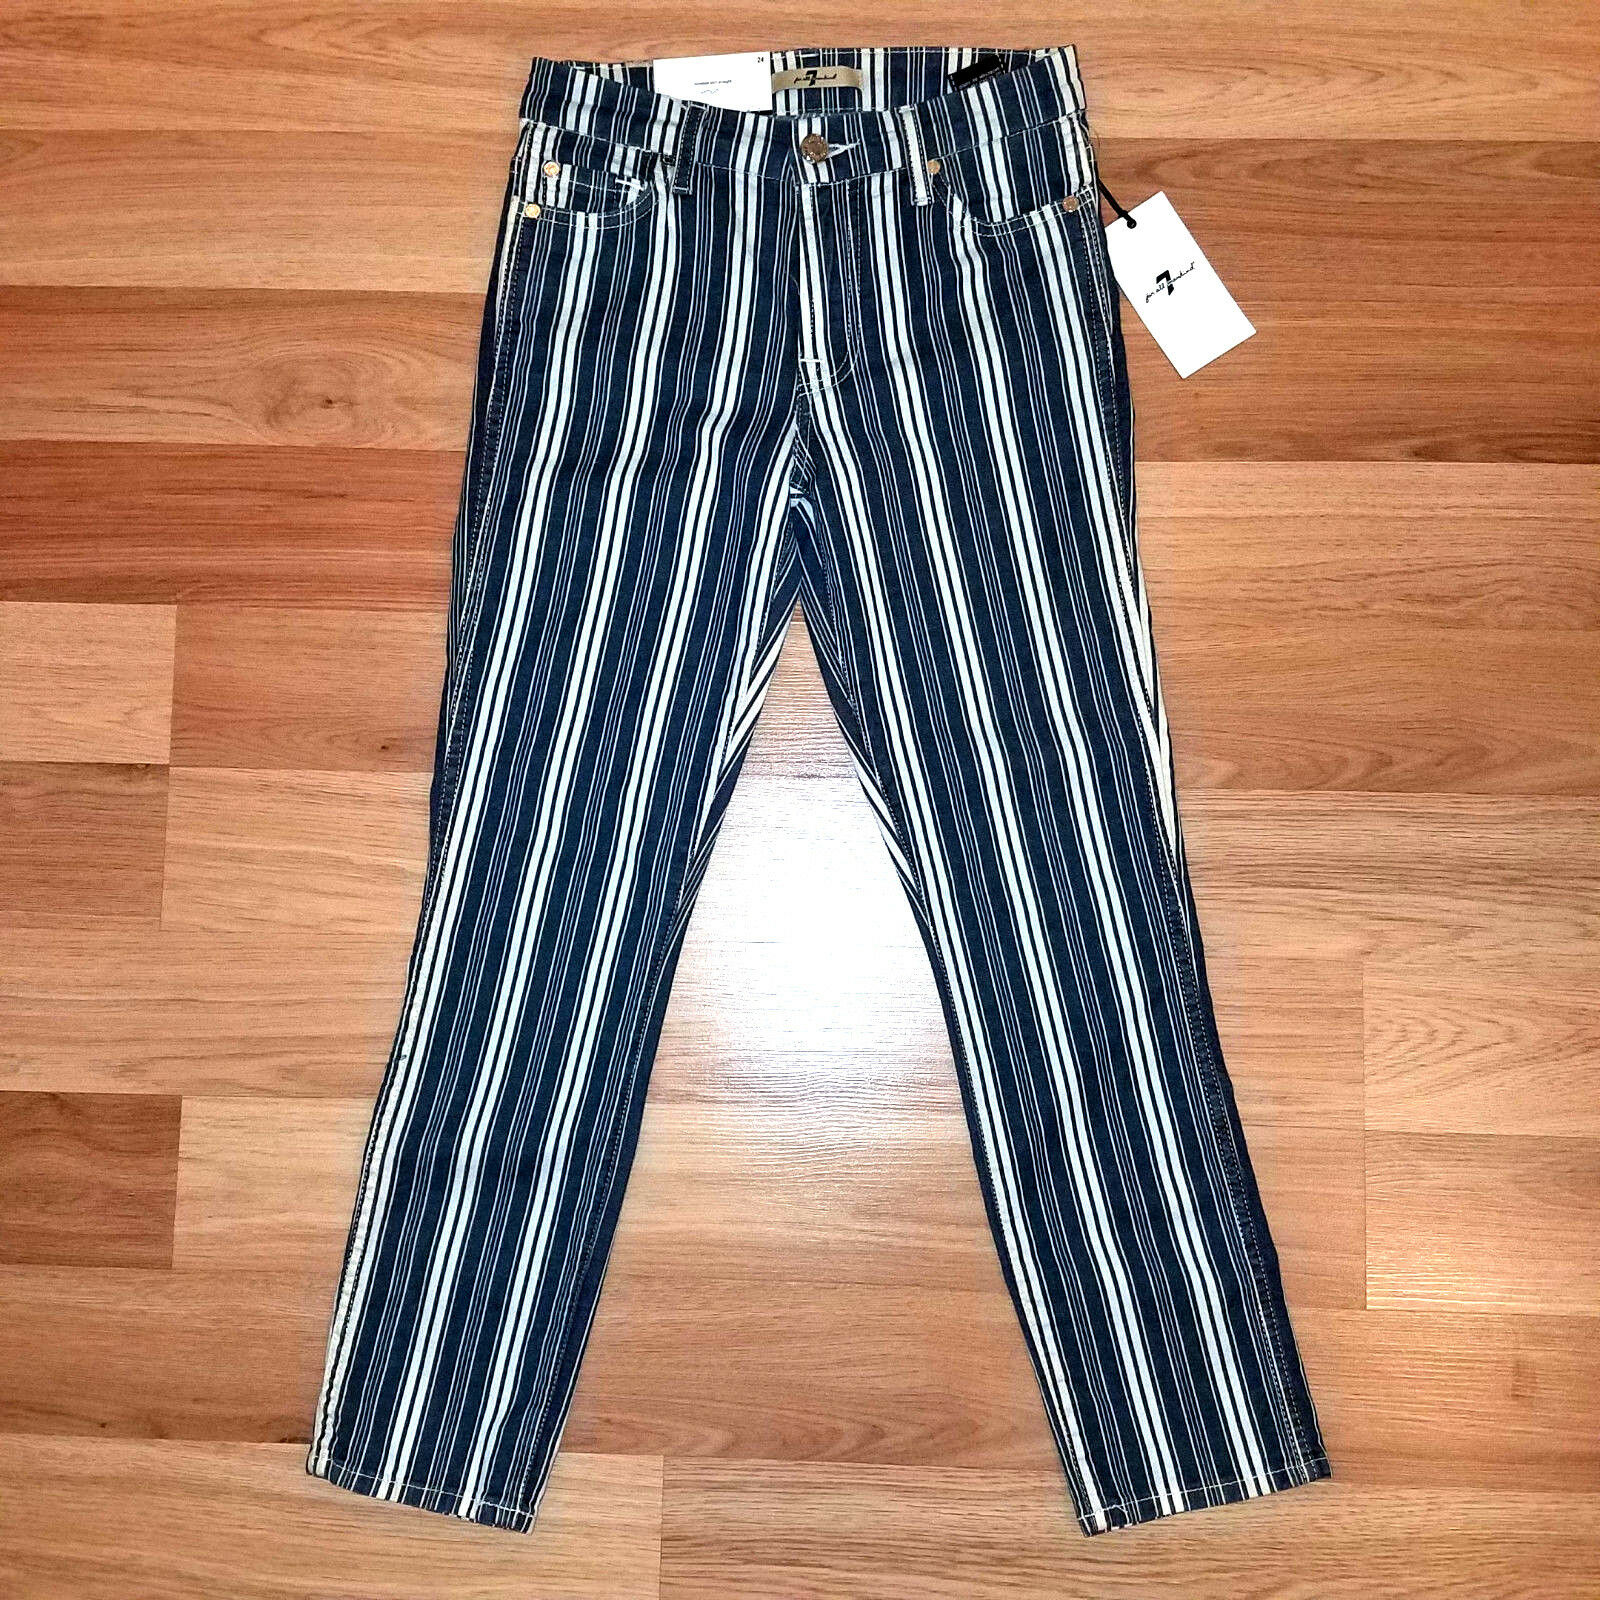 New 7 FOR ALL MANKIND women jeans bluee white slim 24 MSRP